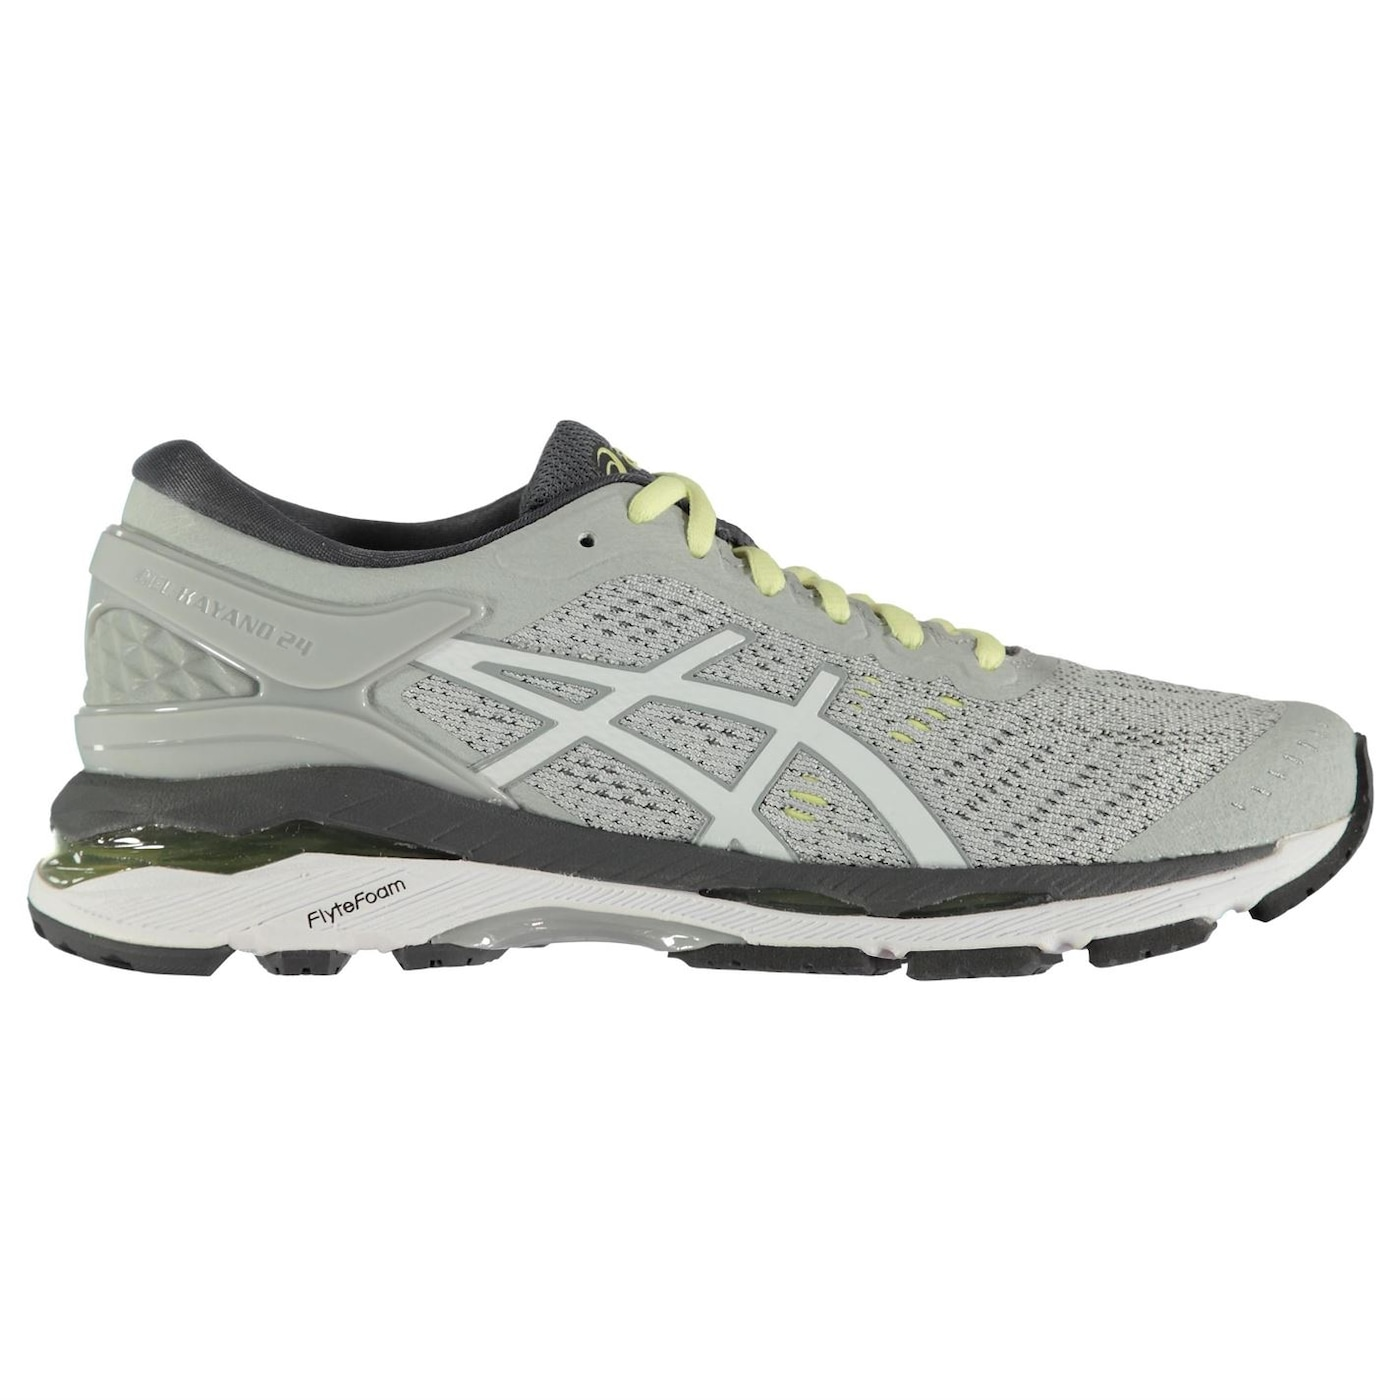 Asics Kayano 24 Ladies Running Shoes